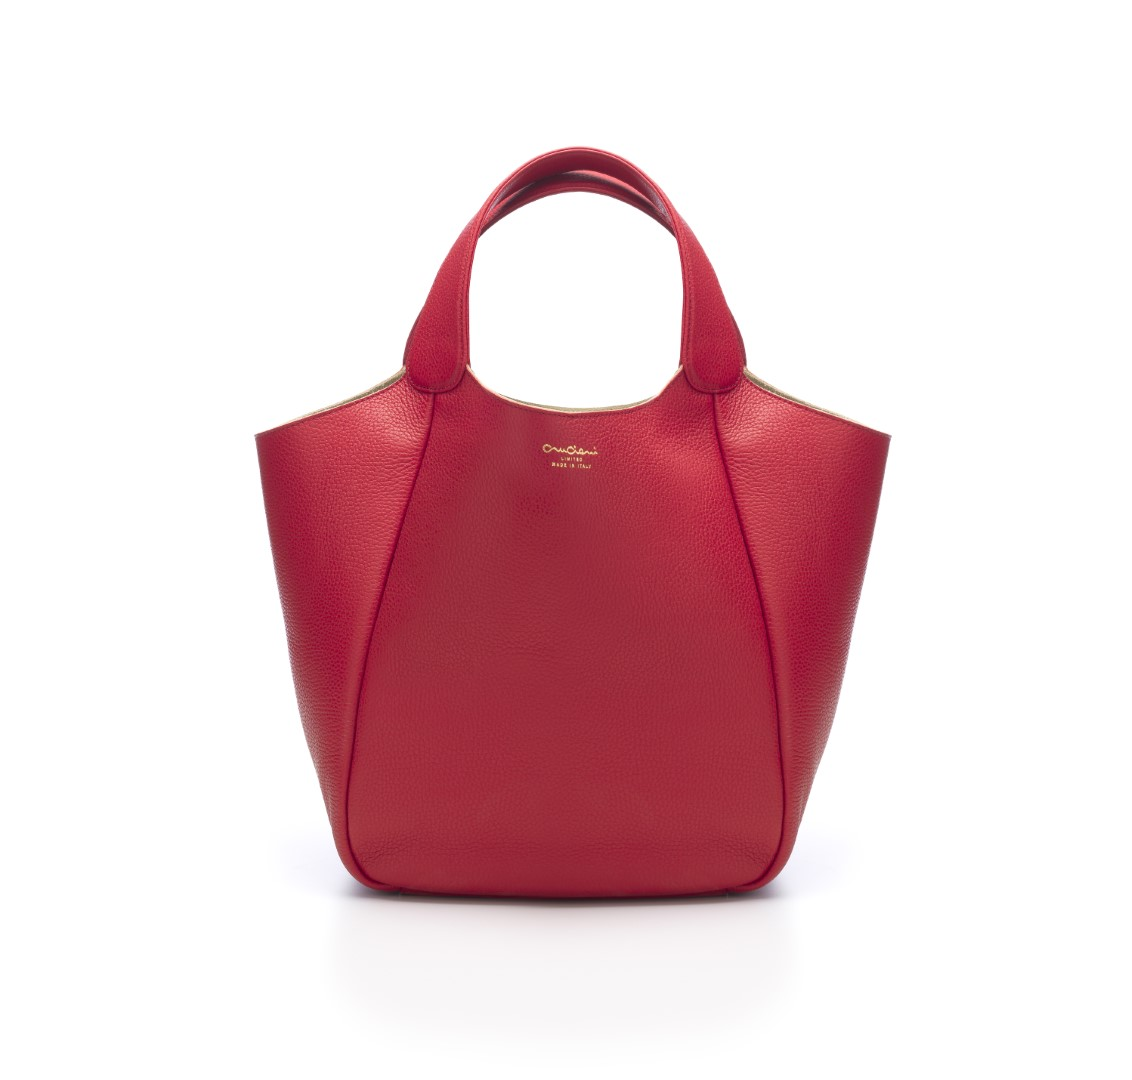 new arrival b4f2a 35c50 Cruciani Shoulder Bags Milano City Large